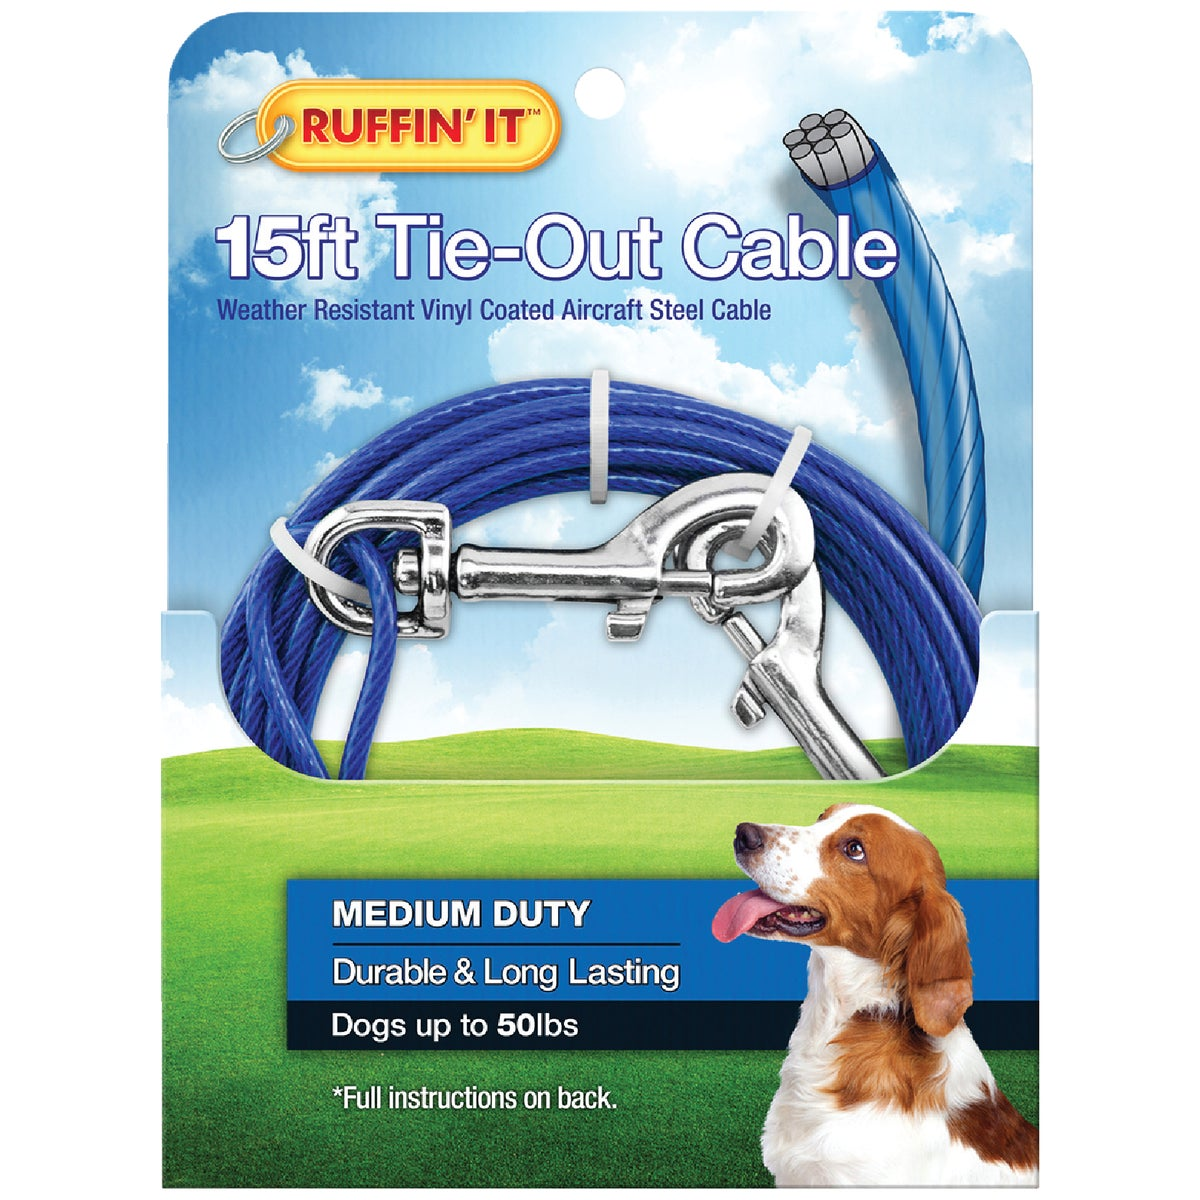 Westminster Pet 15' TIE-OUT CABLE 29115